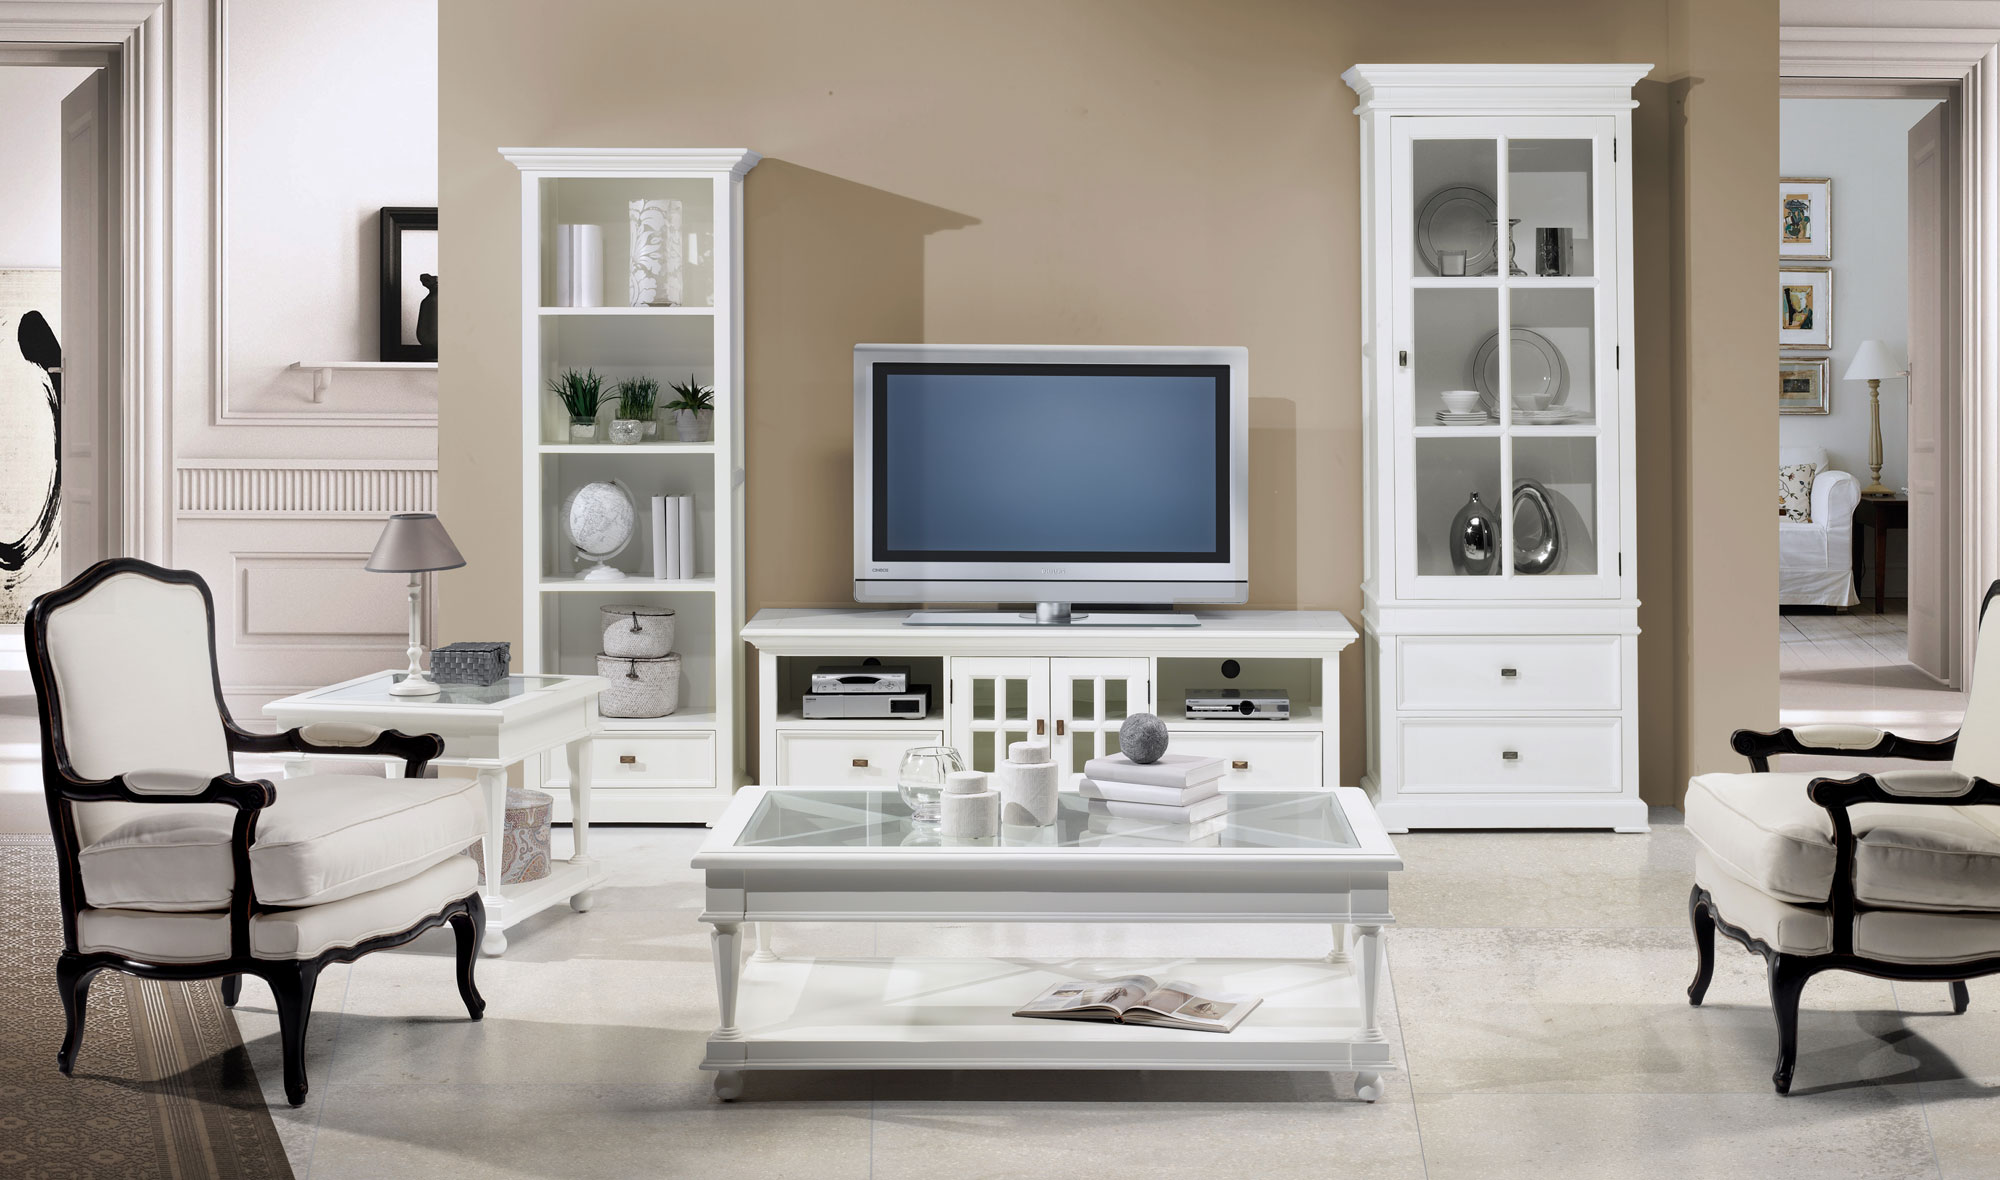 Sal n vintage beri en for Muebles para tv conforama